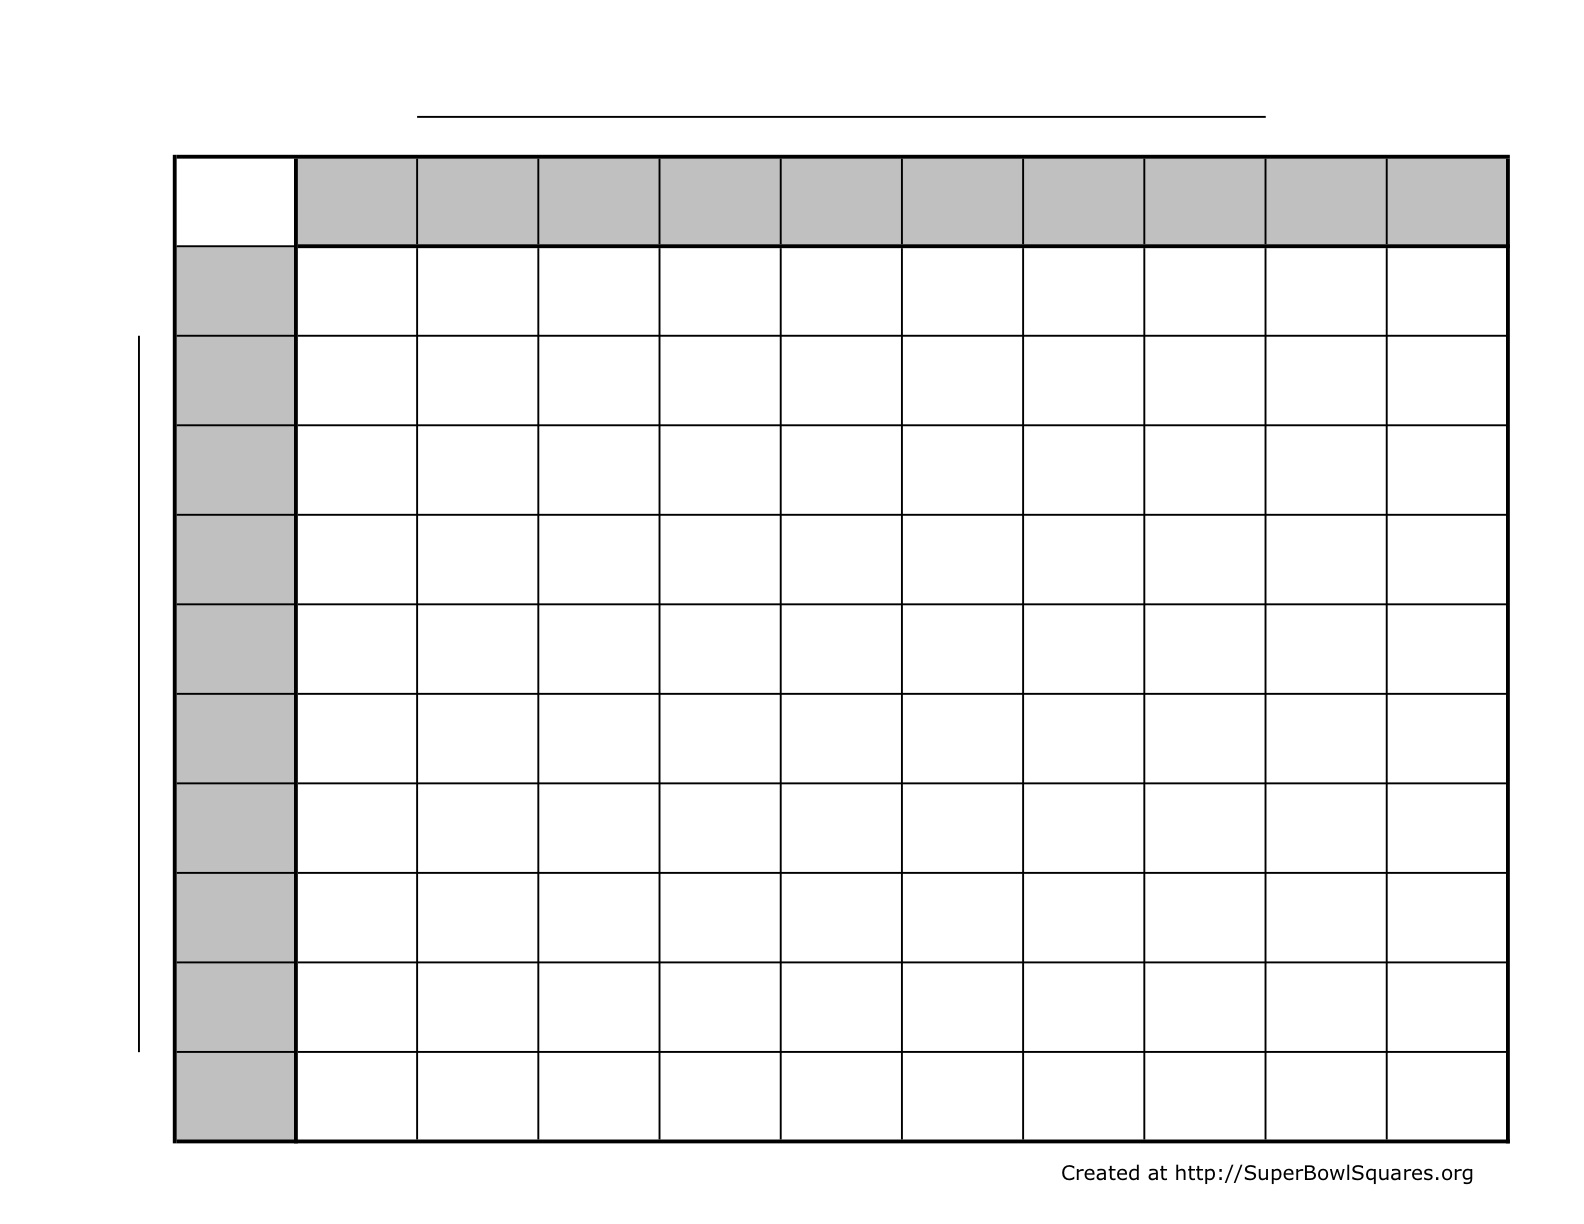 graphic regarding Printable 25 Square Grid titled Printable Basketball Squares Sheets